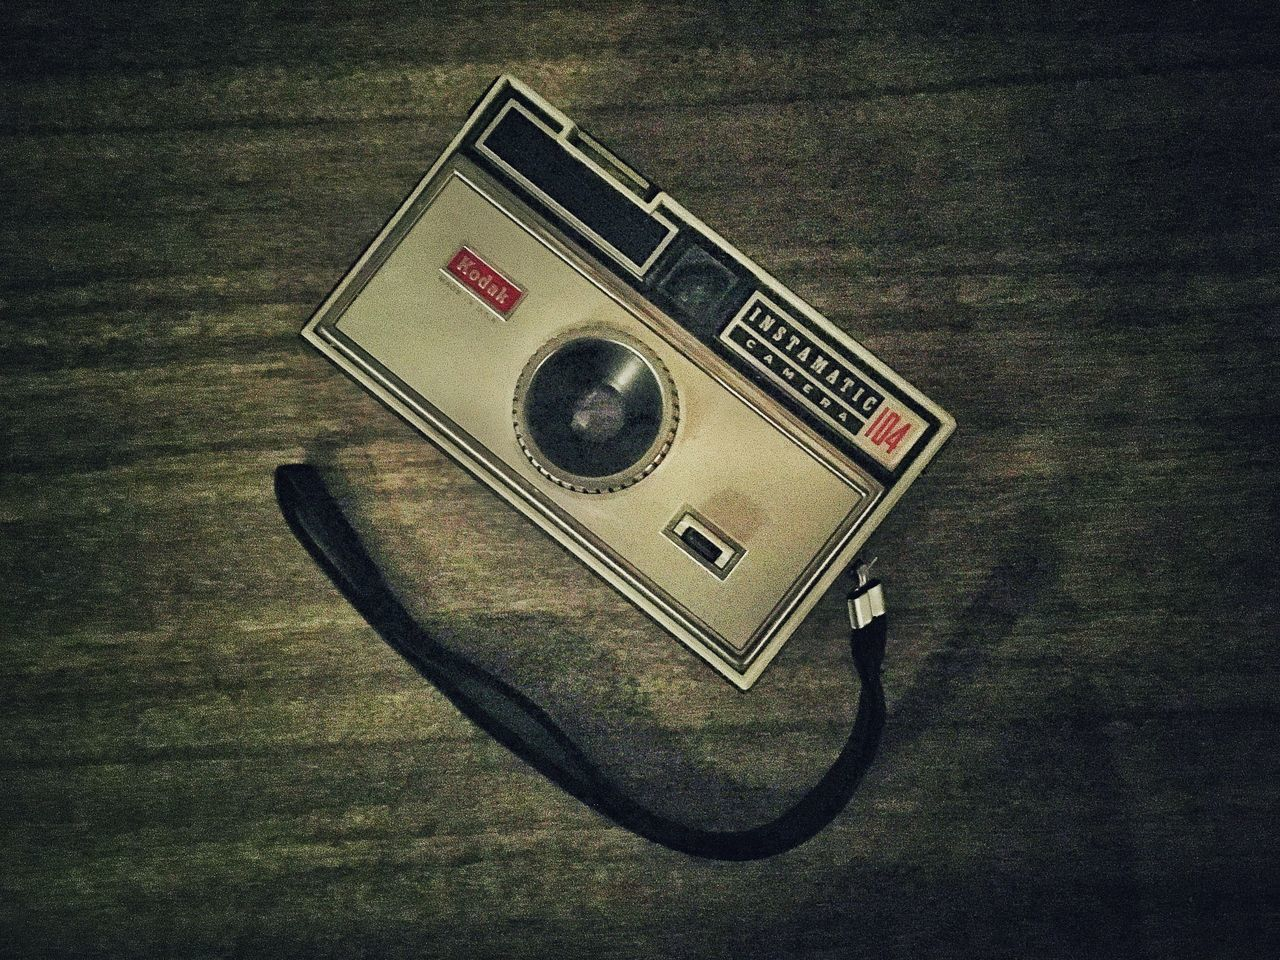 old-fashioned, indoors, table, retro styled, single object, no people, camera - photographic equipment, technology, close-up, day